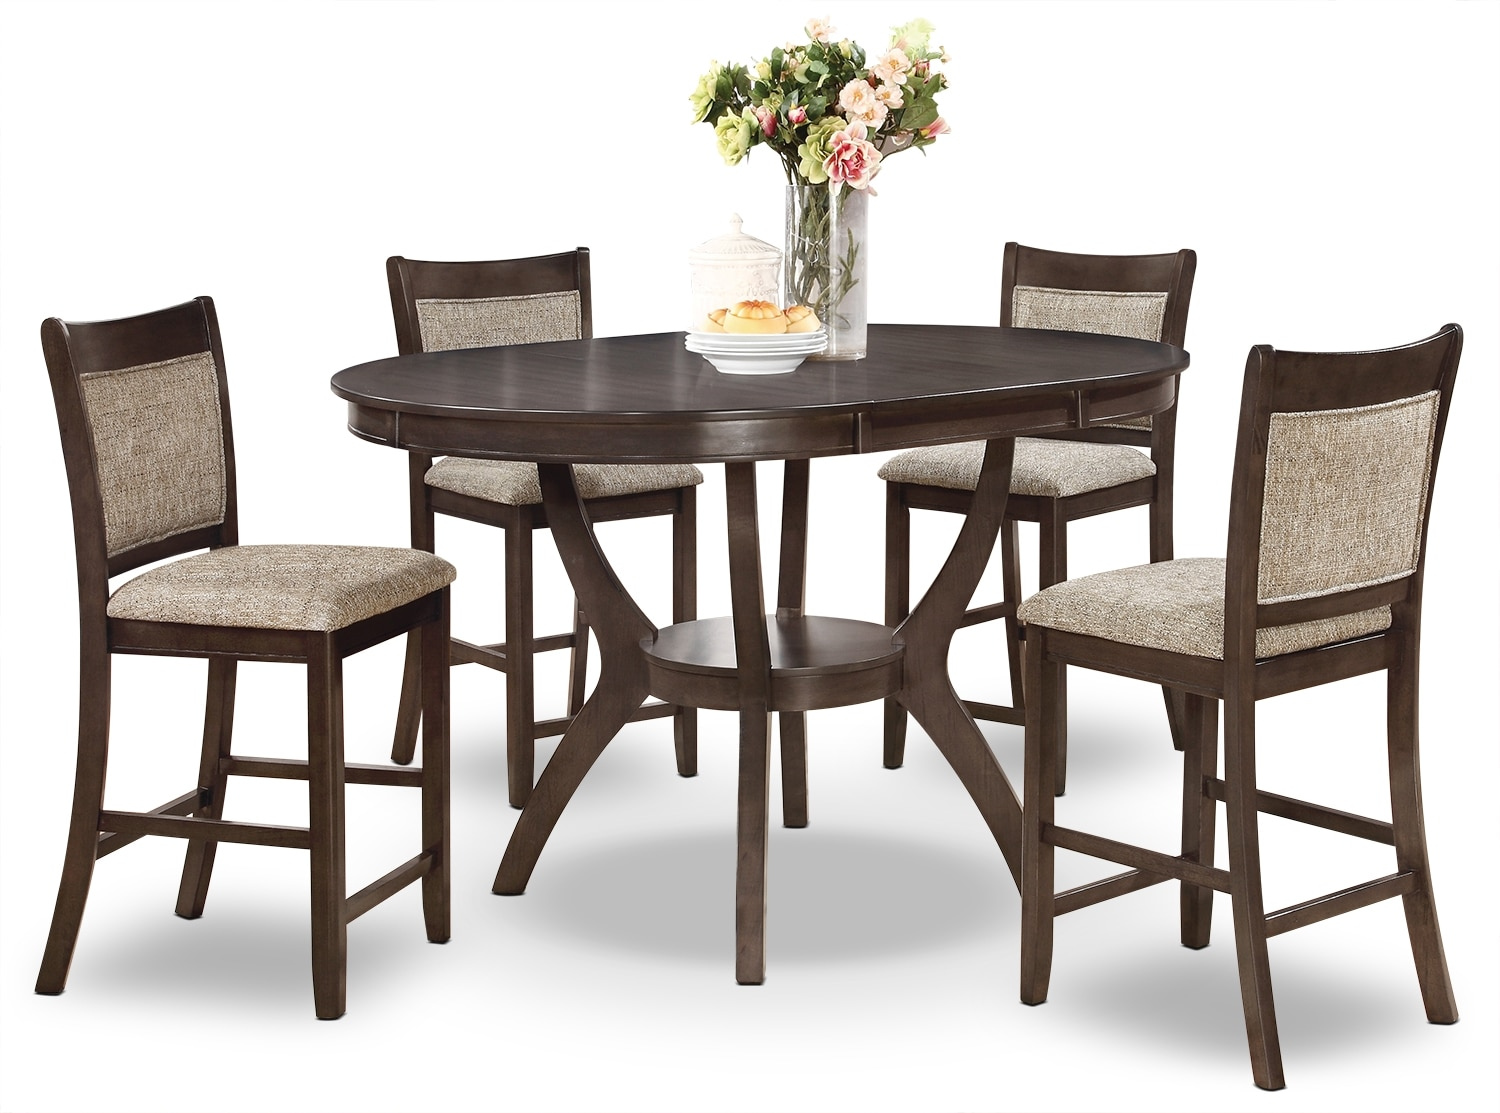 Dining Room Furniture - Adell 5-Piece Counter-Height Dining Package - Brown-Grey